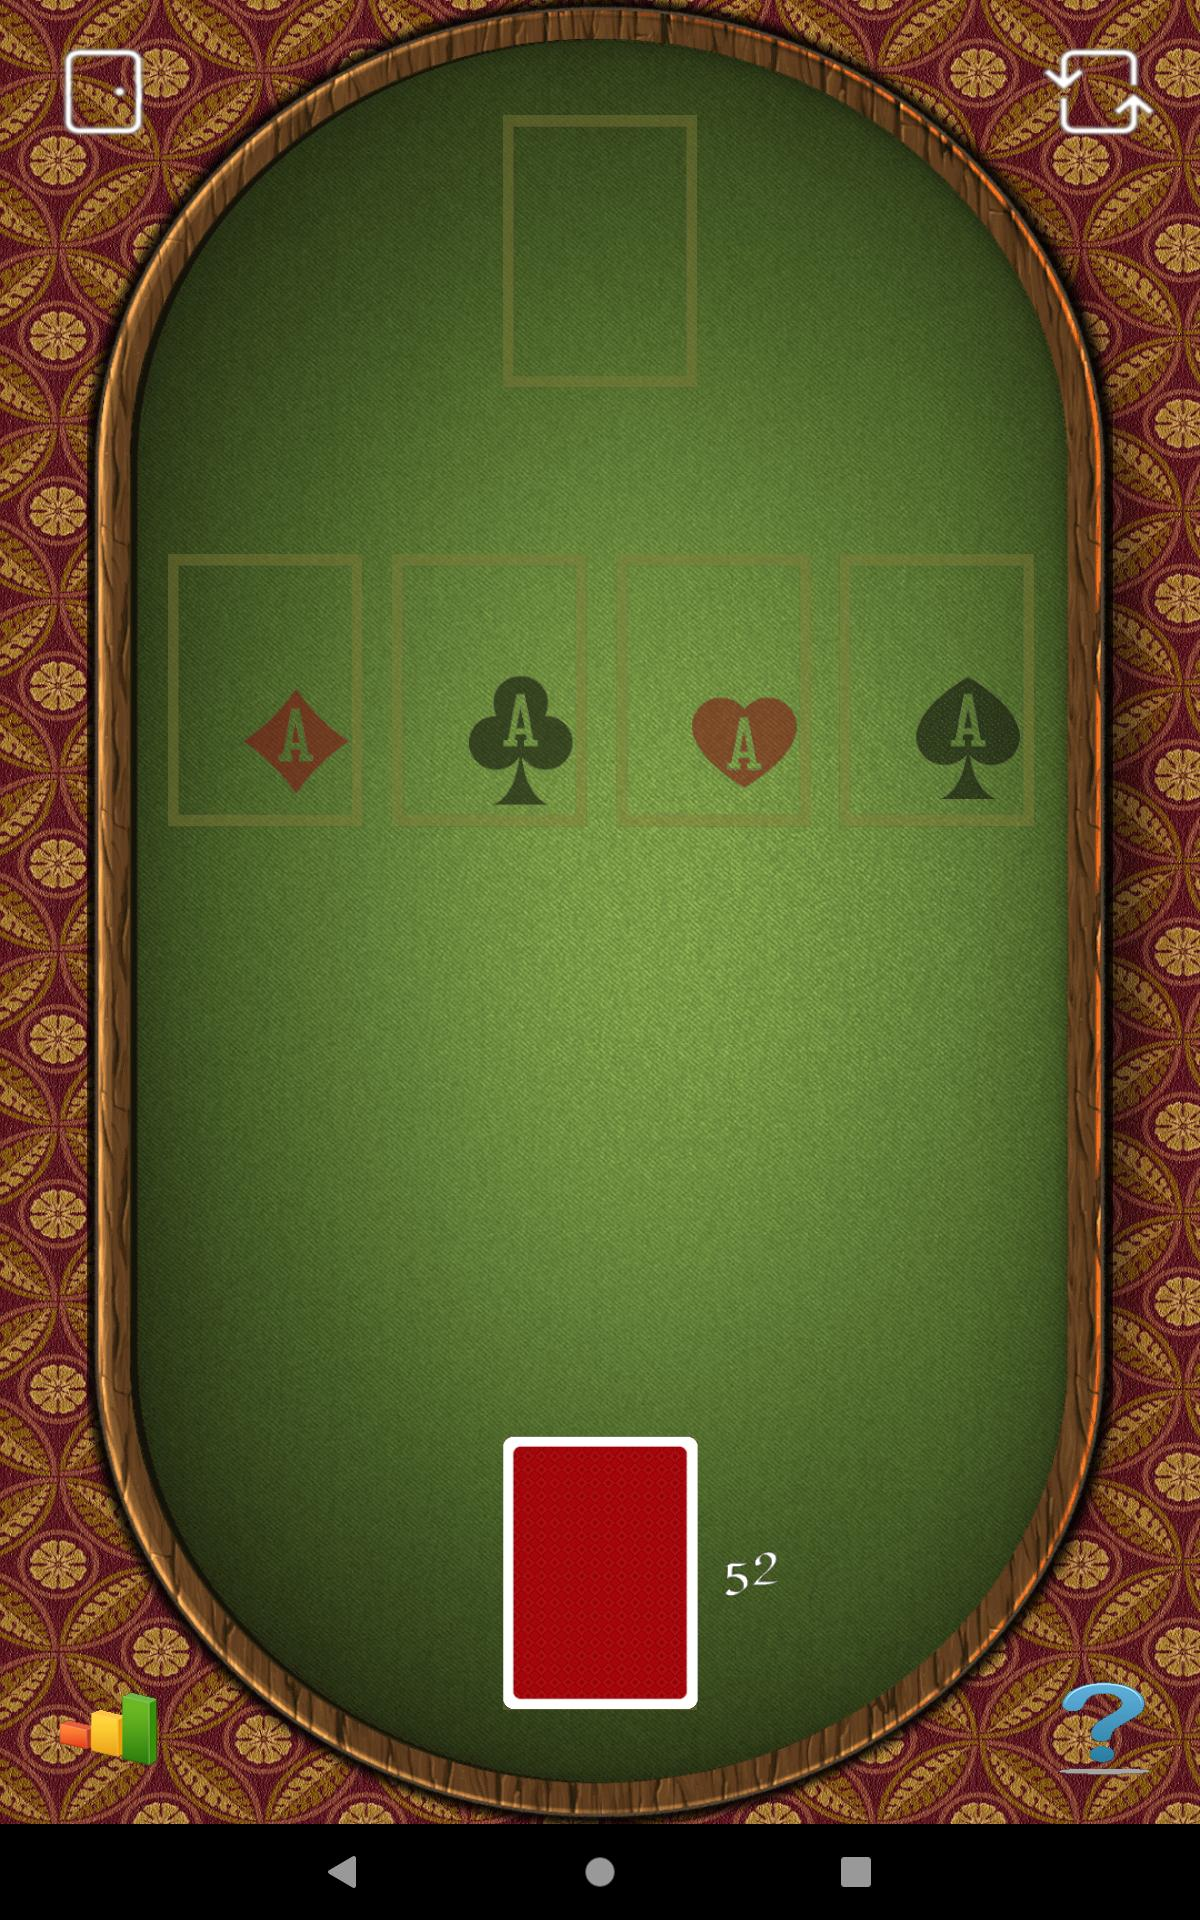 Aces Up Solitaire 5.4 Screenshot 22